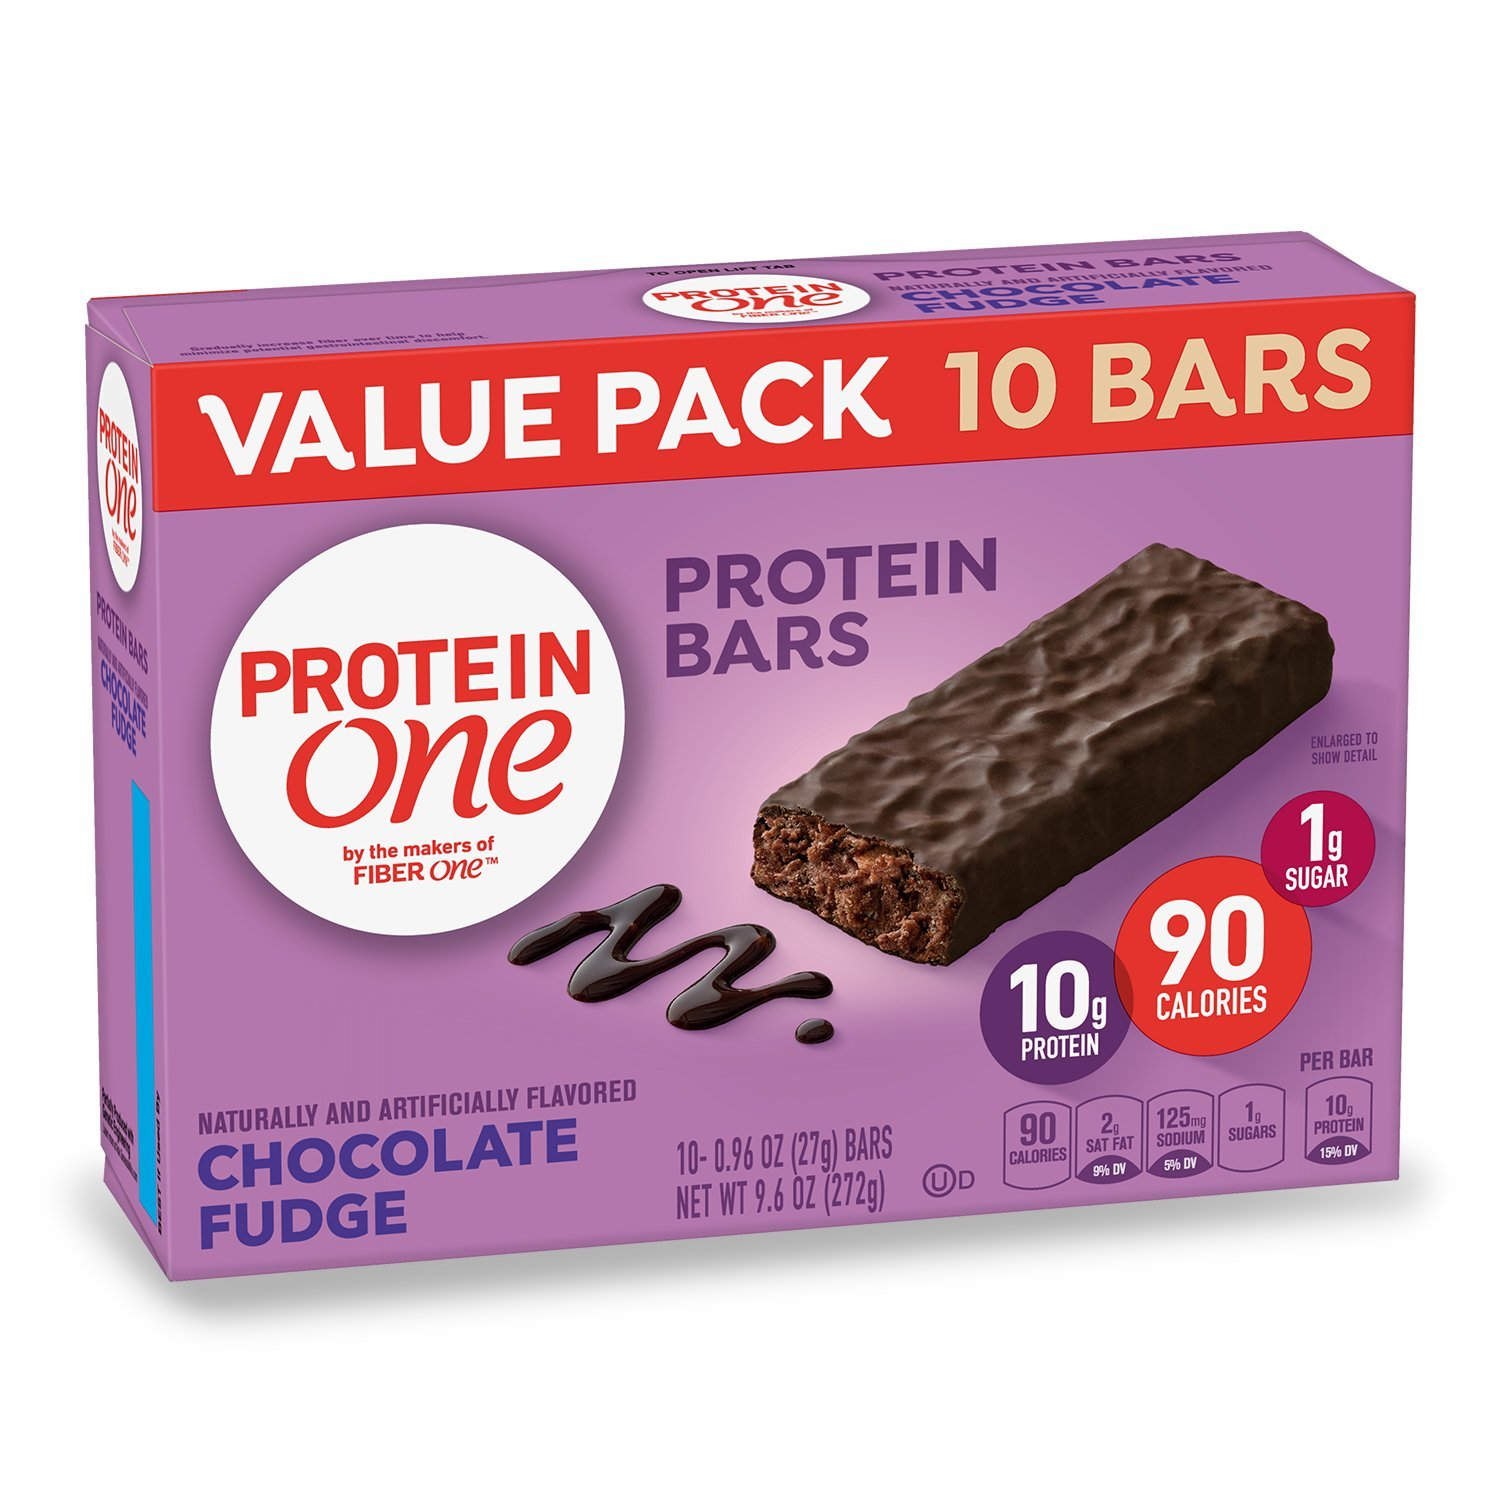 Protein One 90 Calorie Protein Bar, Chocolate Fudge, 9.6 oz(us)